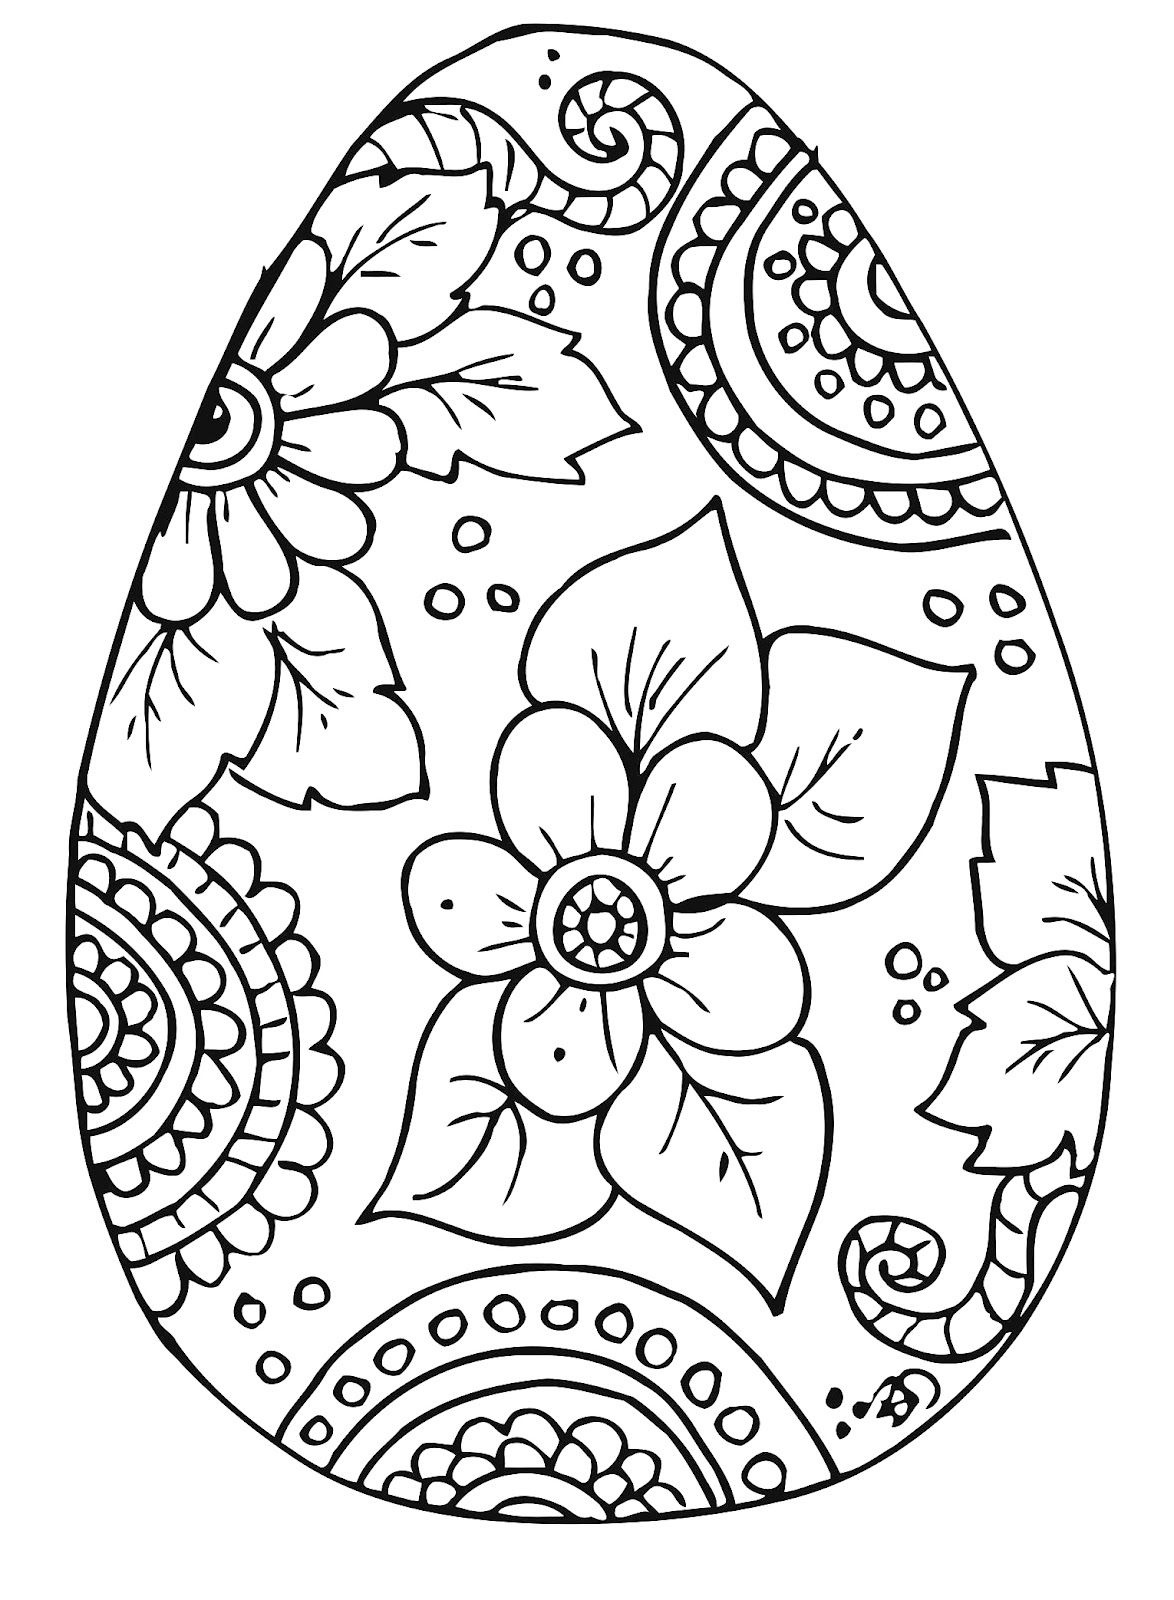 10 Cool Free Printable Easter Coloring Pages For Kids Who've Moved - Free Printable Easter Drawings